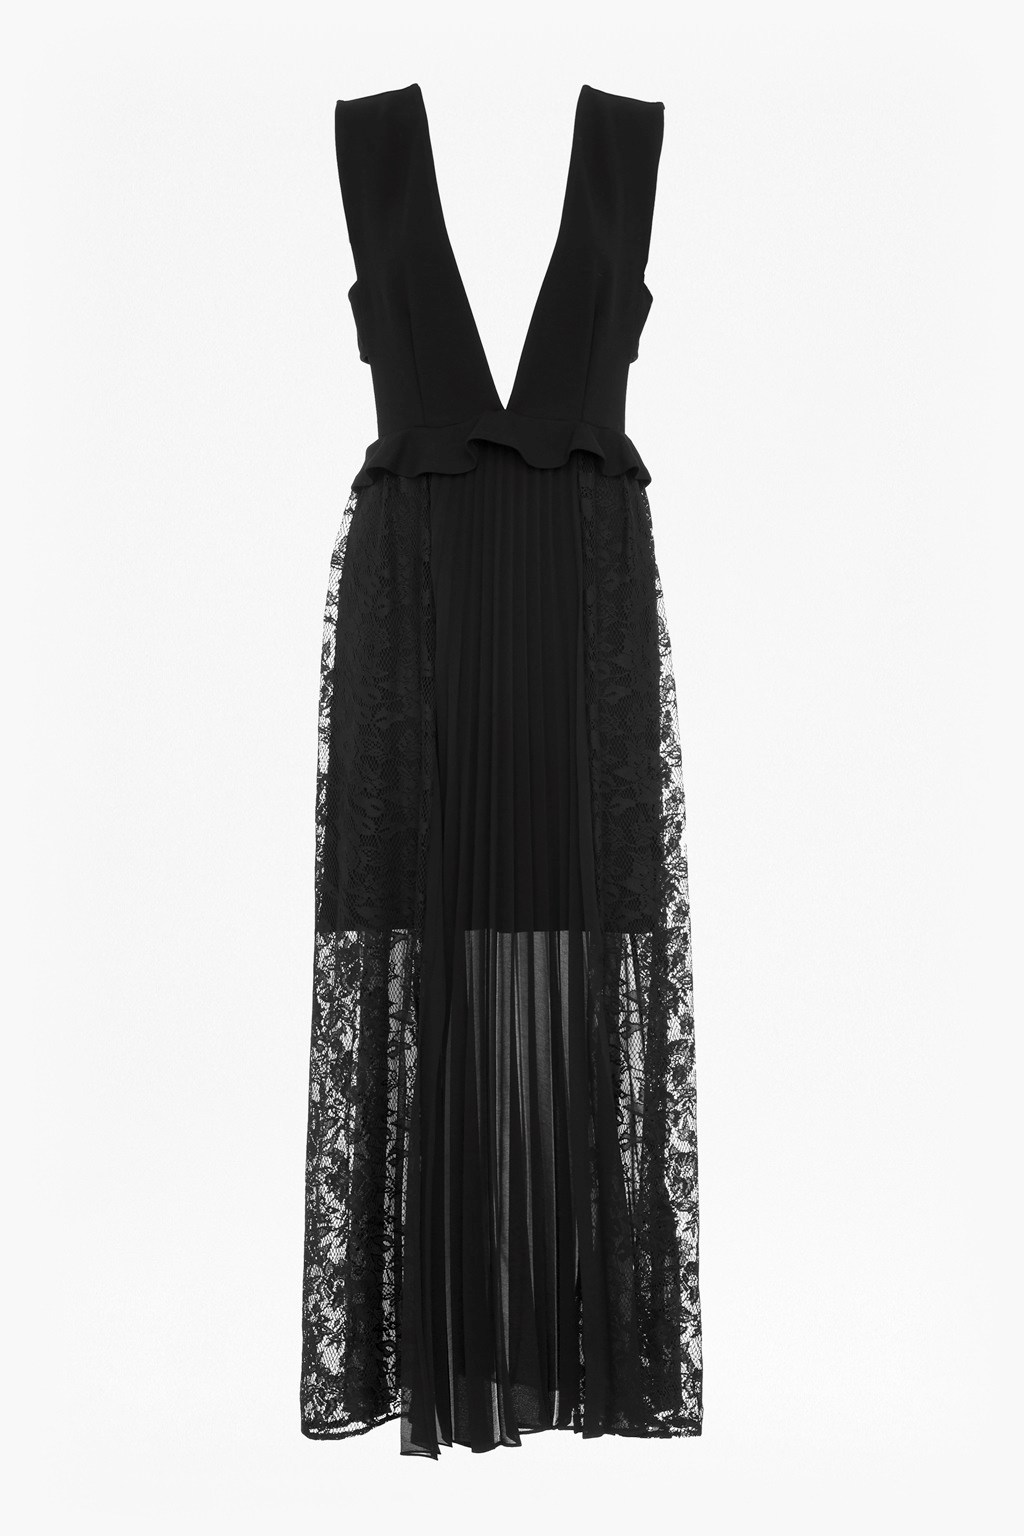 dad7dd81f80 loading images... loading images... Angelina Pleated Lace and Jersey Maxi  Dress